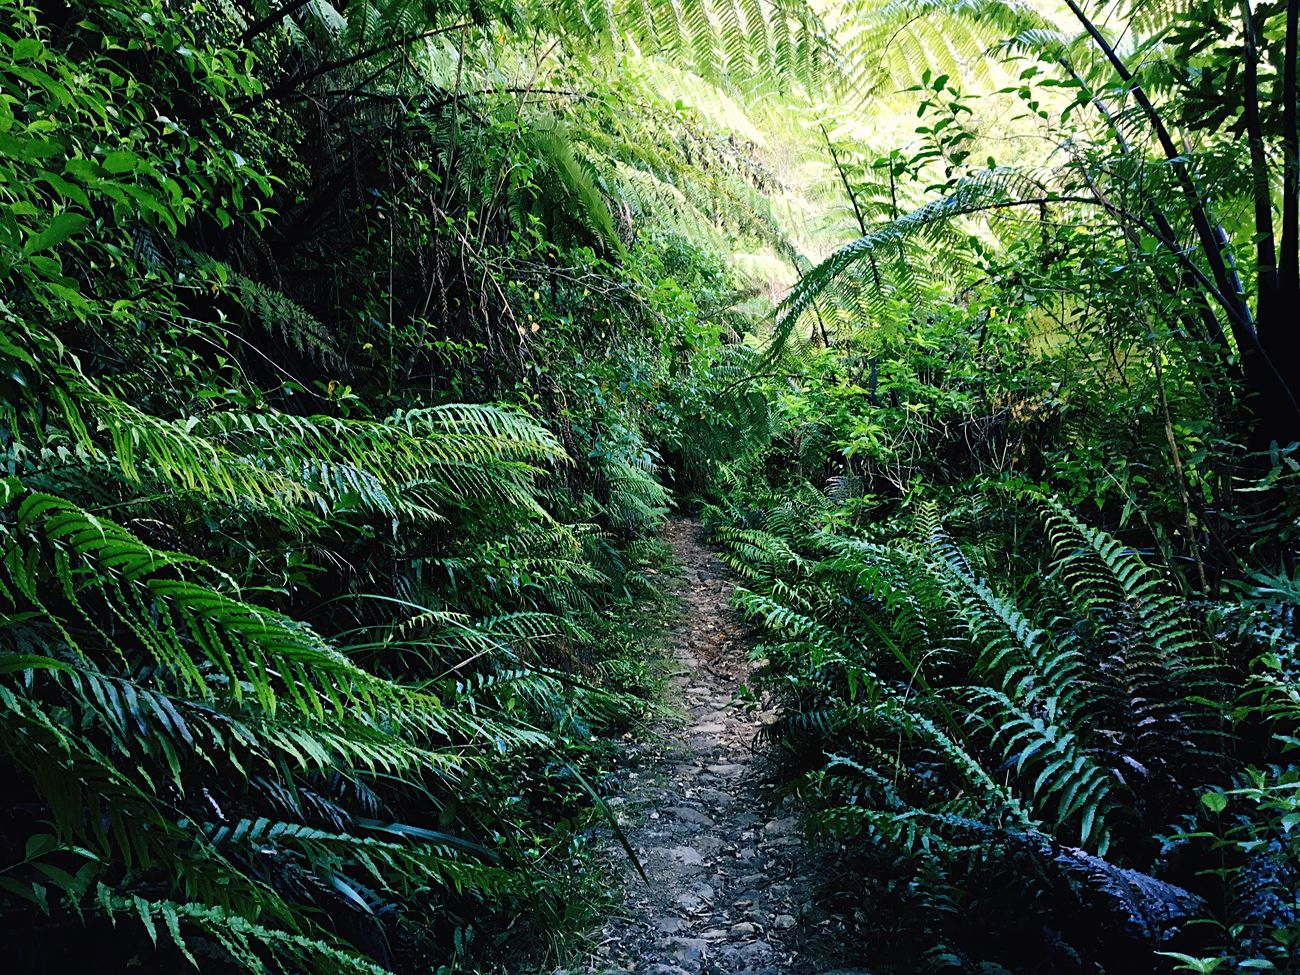 Nature Forest Tree Lush Foliage Green Color Beauty In Nature Outdoors No People Lush - Description Day